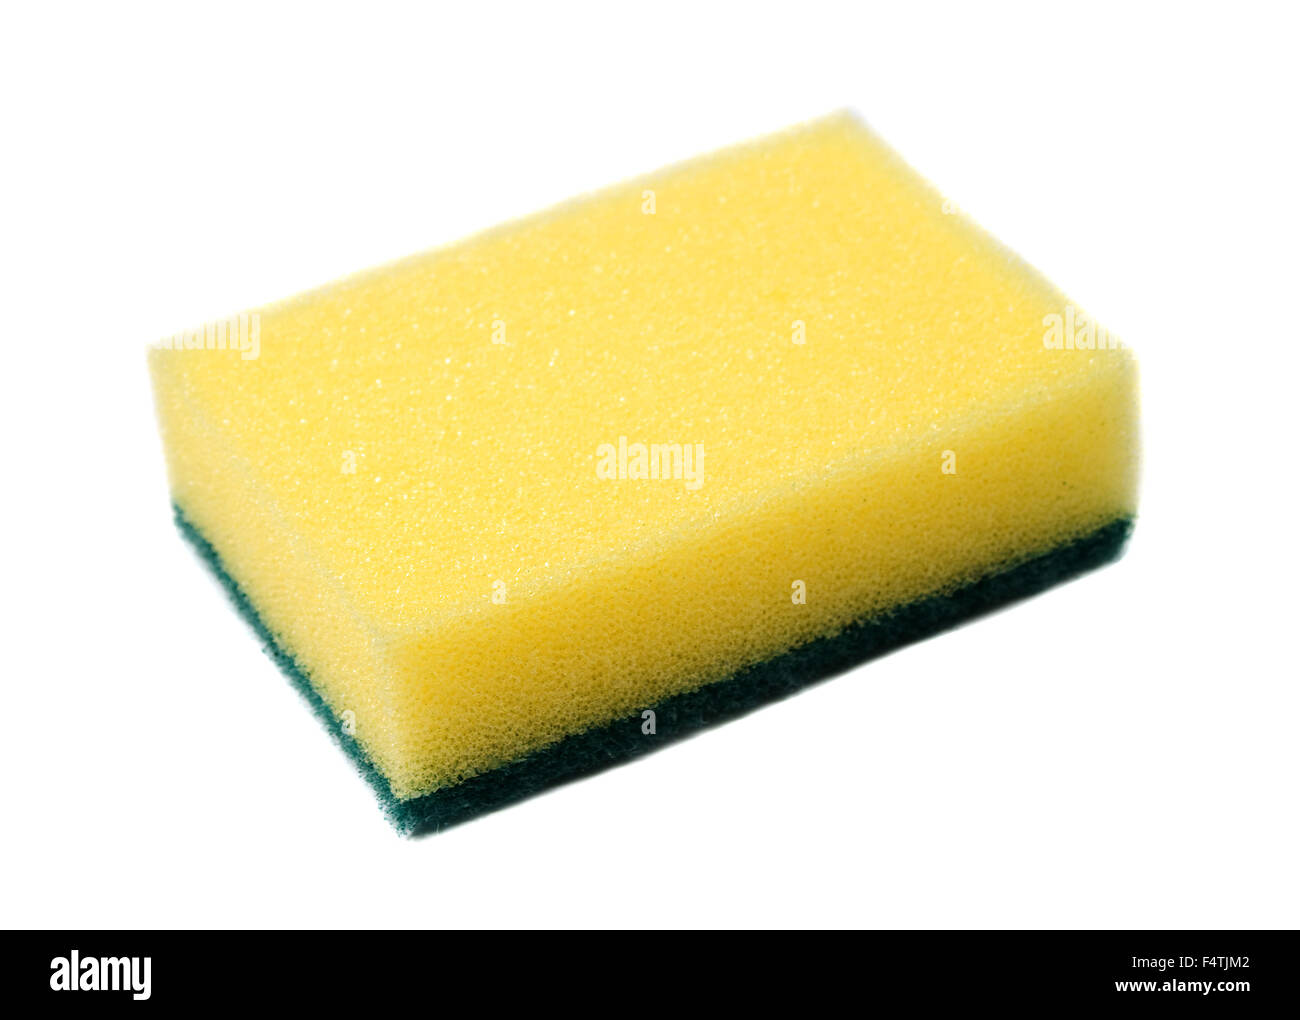 yellow sponge for dish washing on white background - Stock Image